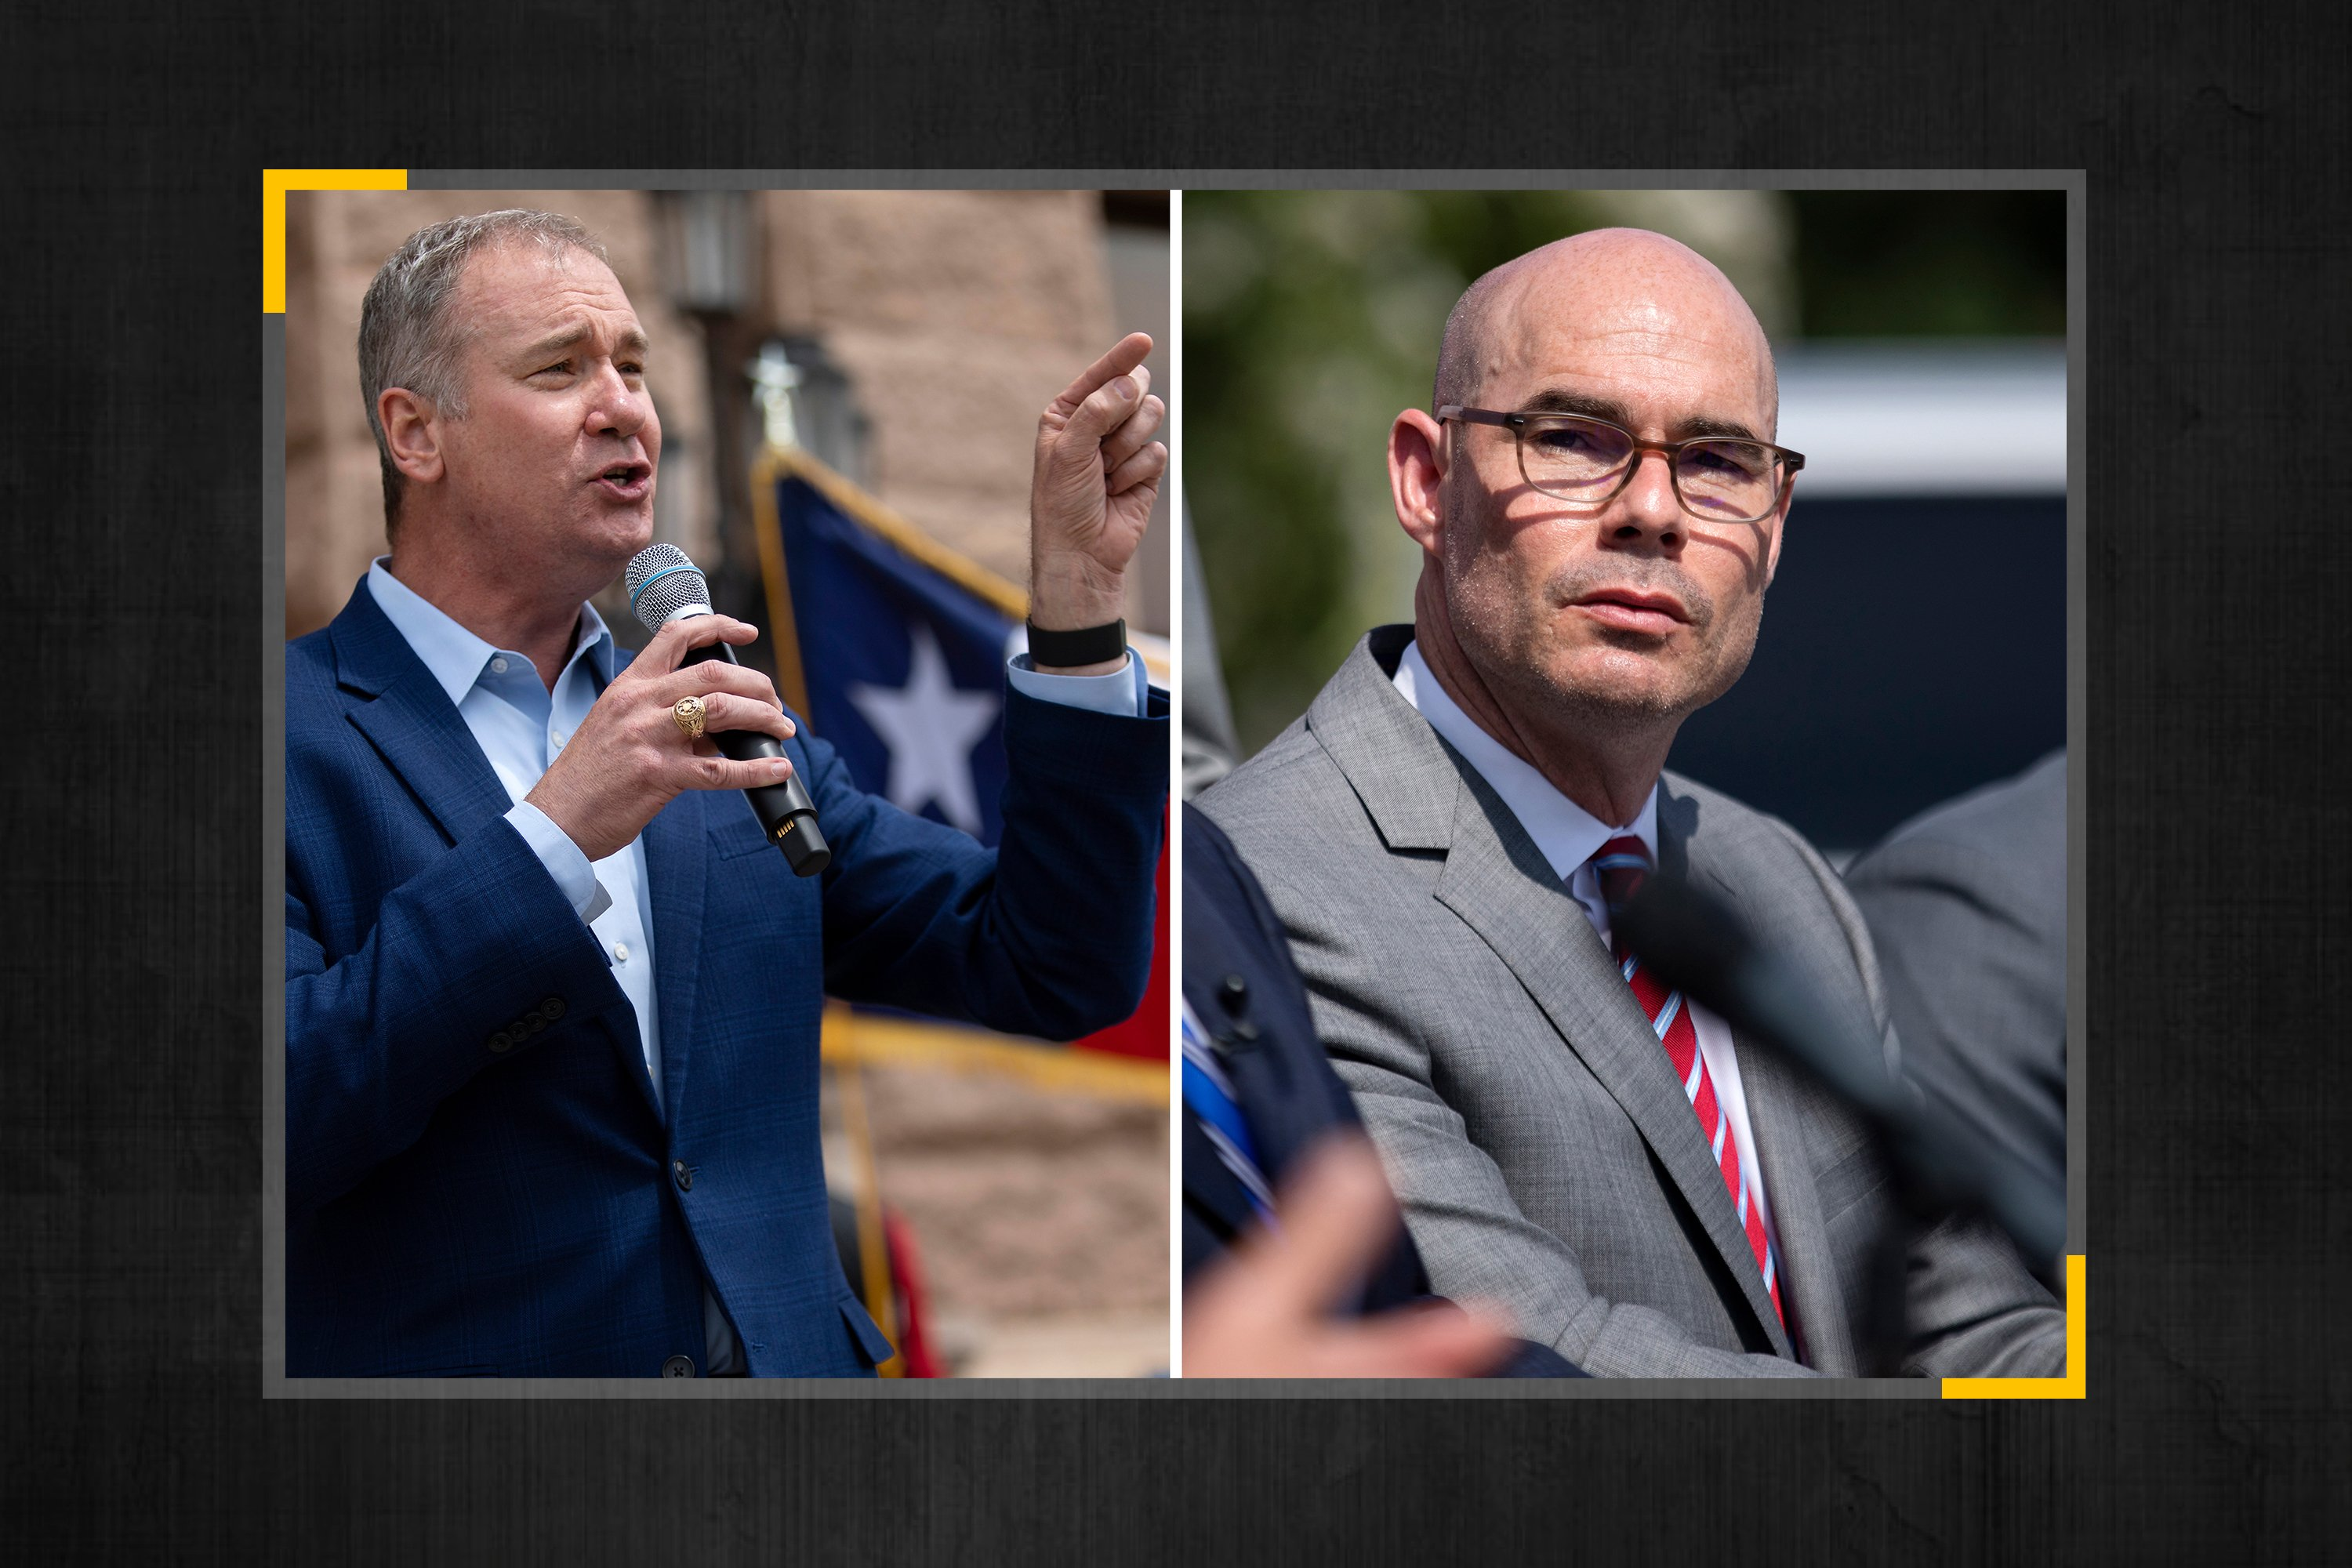 Texas House Speaker Dennis Bonnen scandal: Who are the key players?